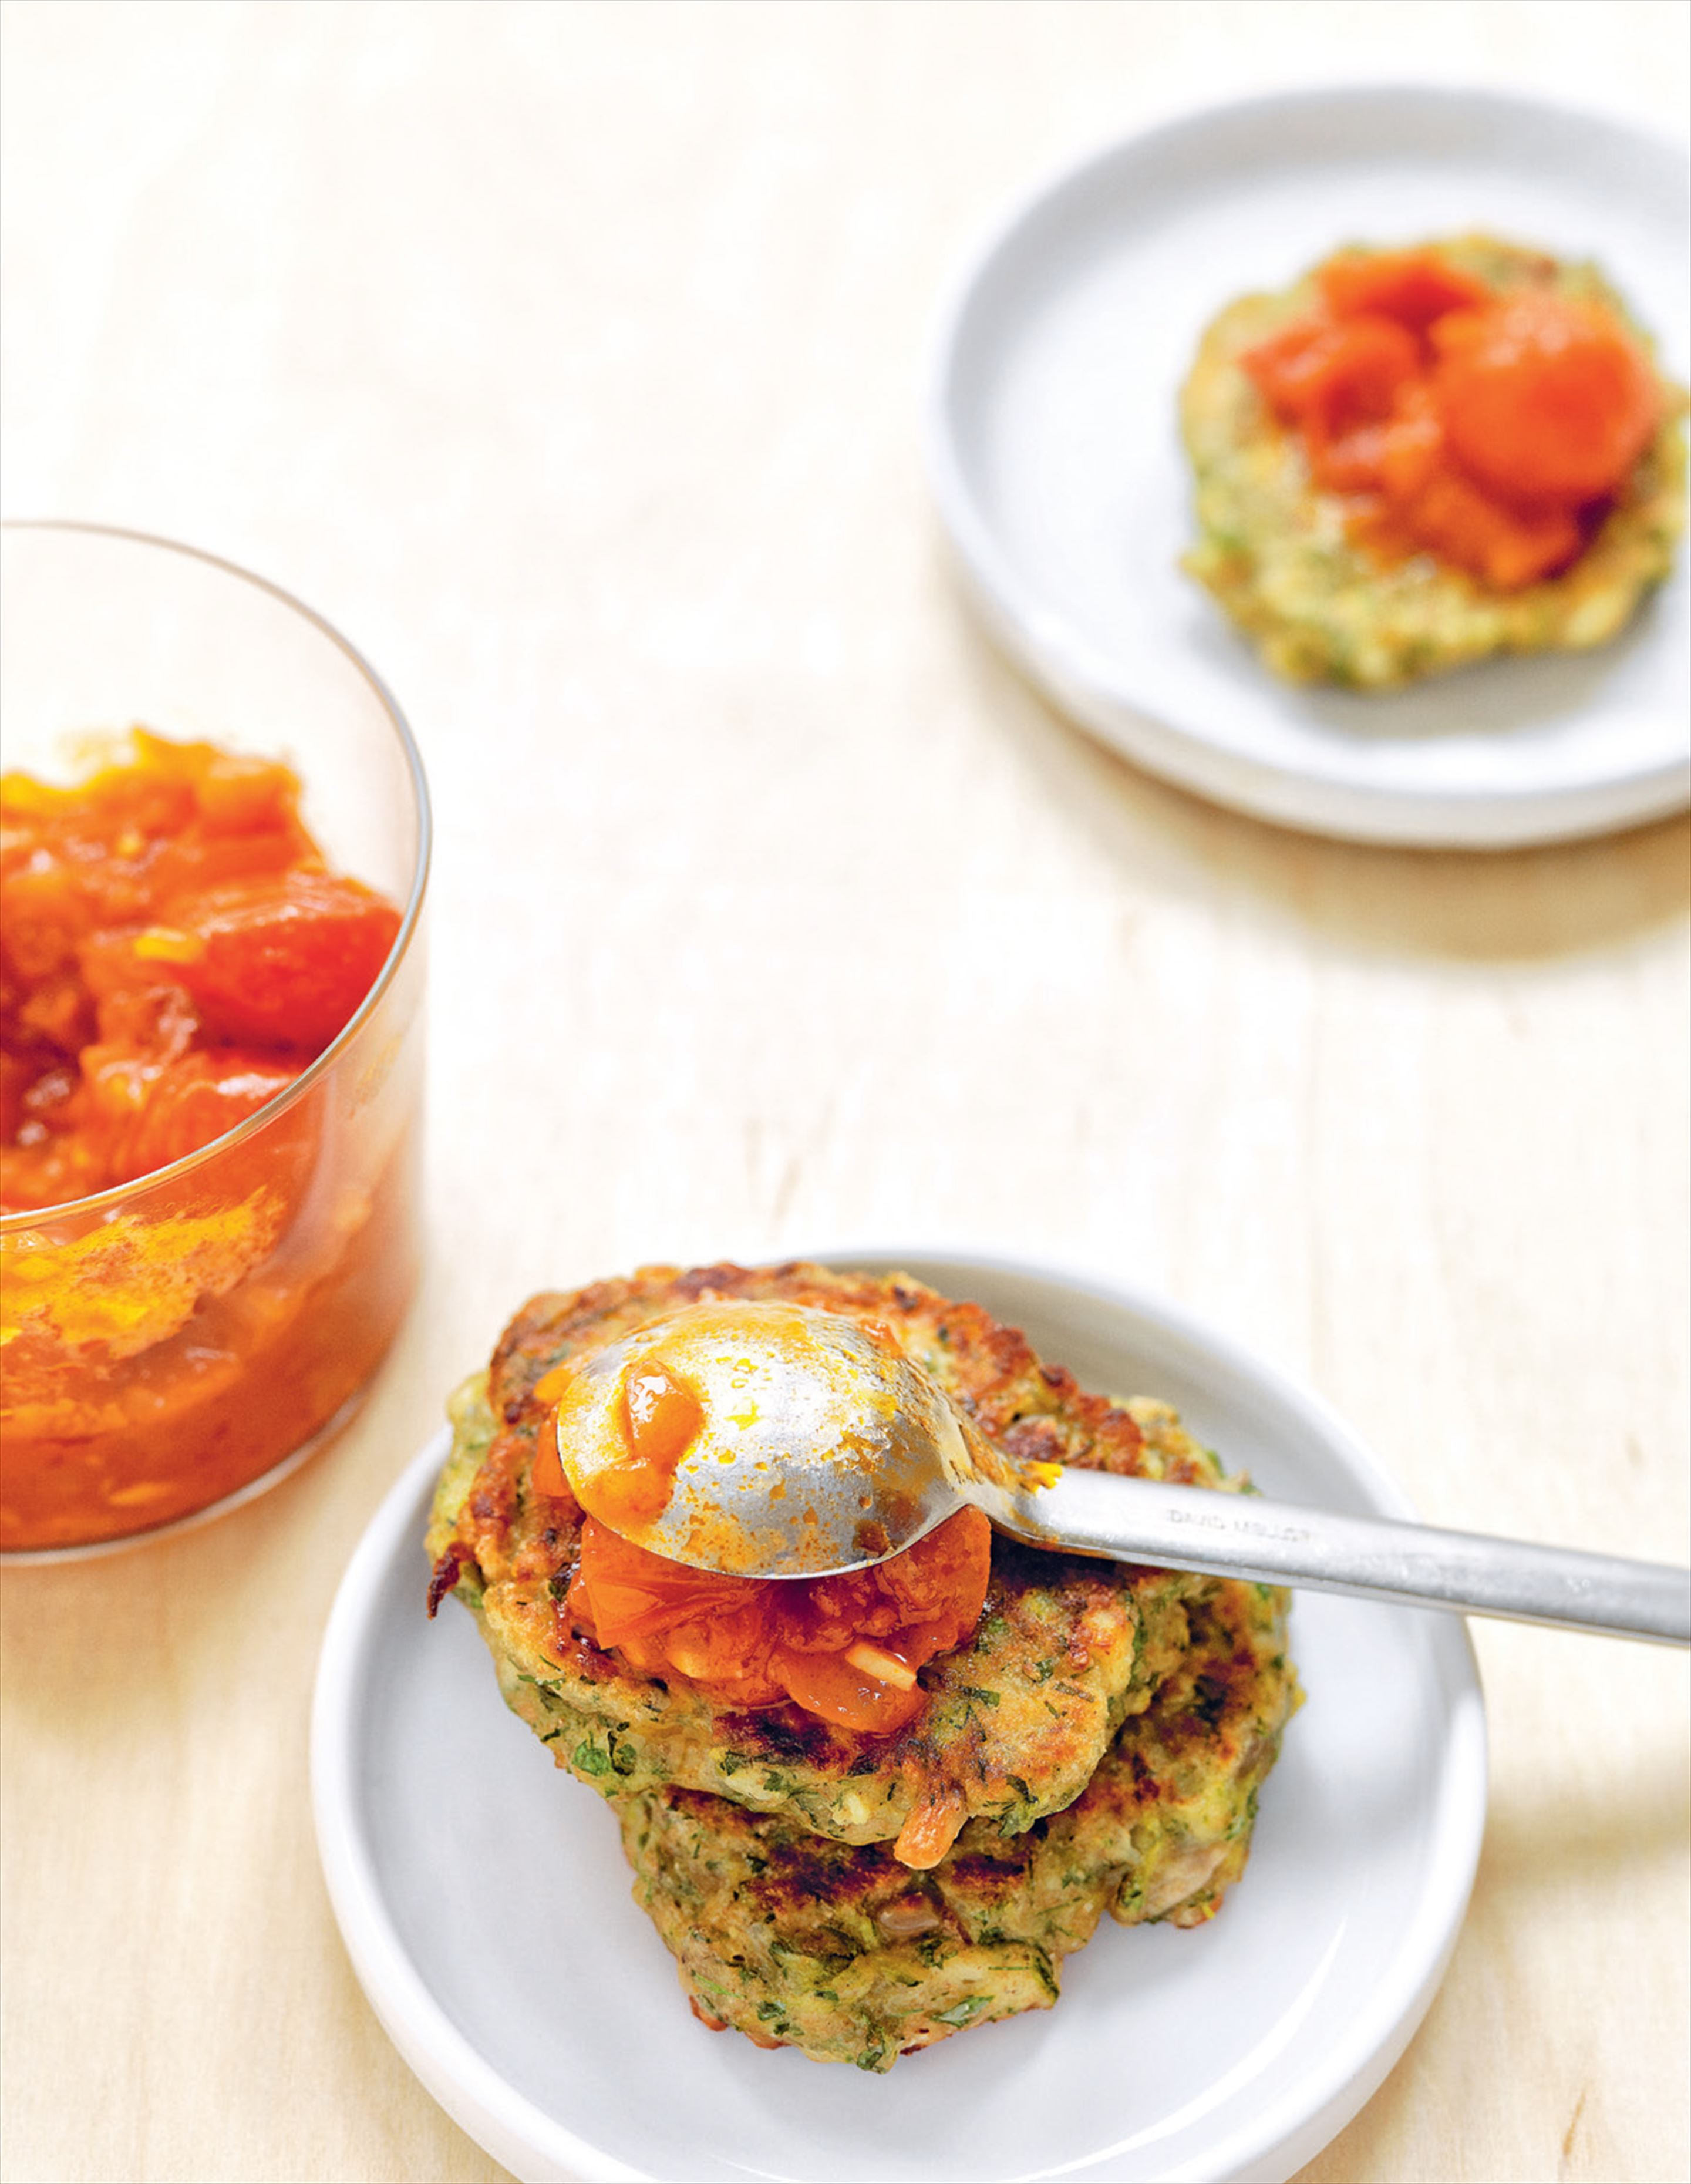 Zucchini & feta fritters with sunflower kernels & tomato sauce